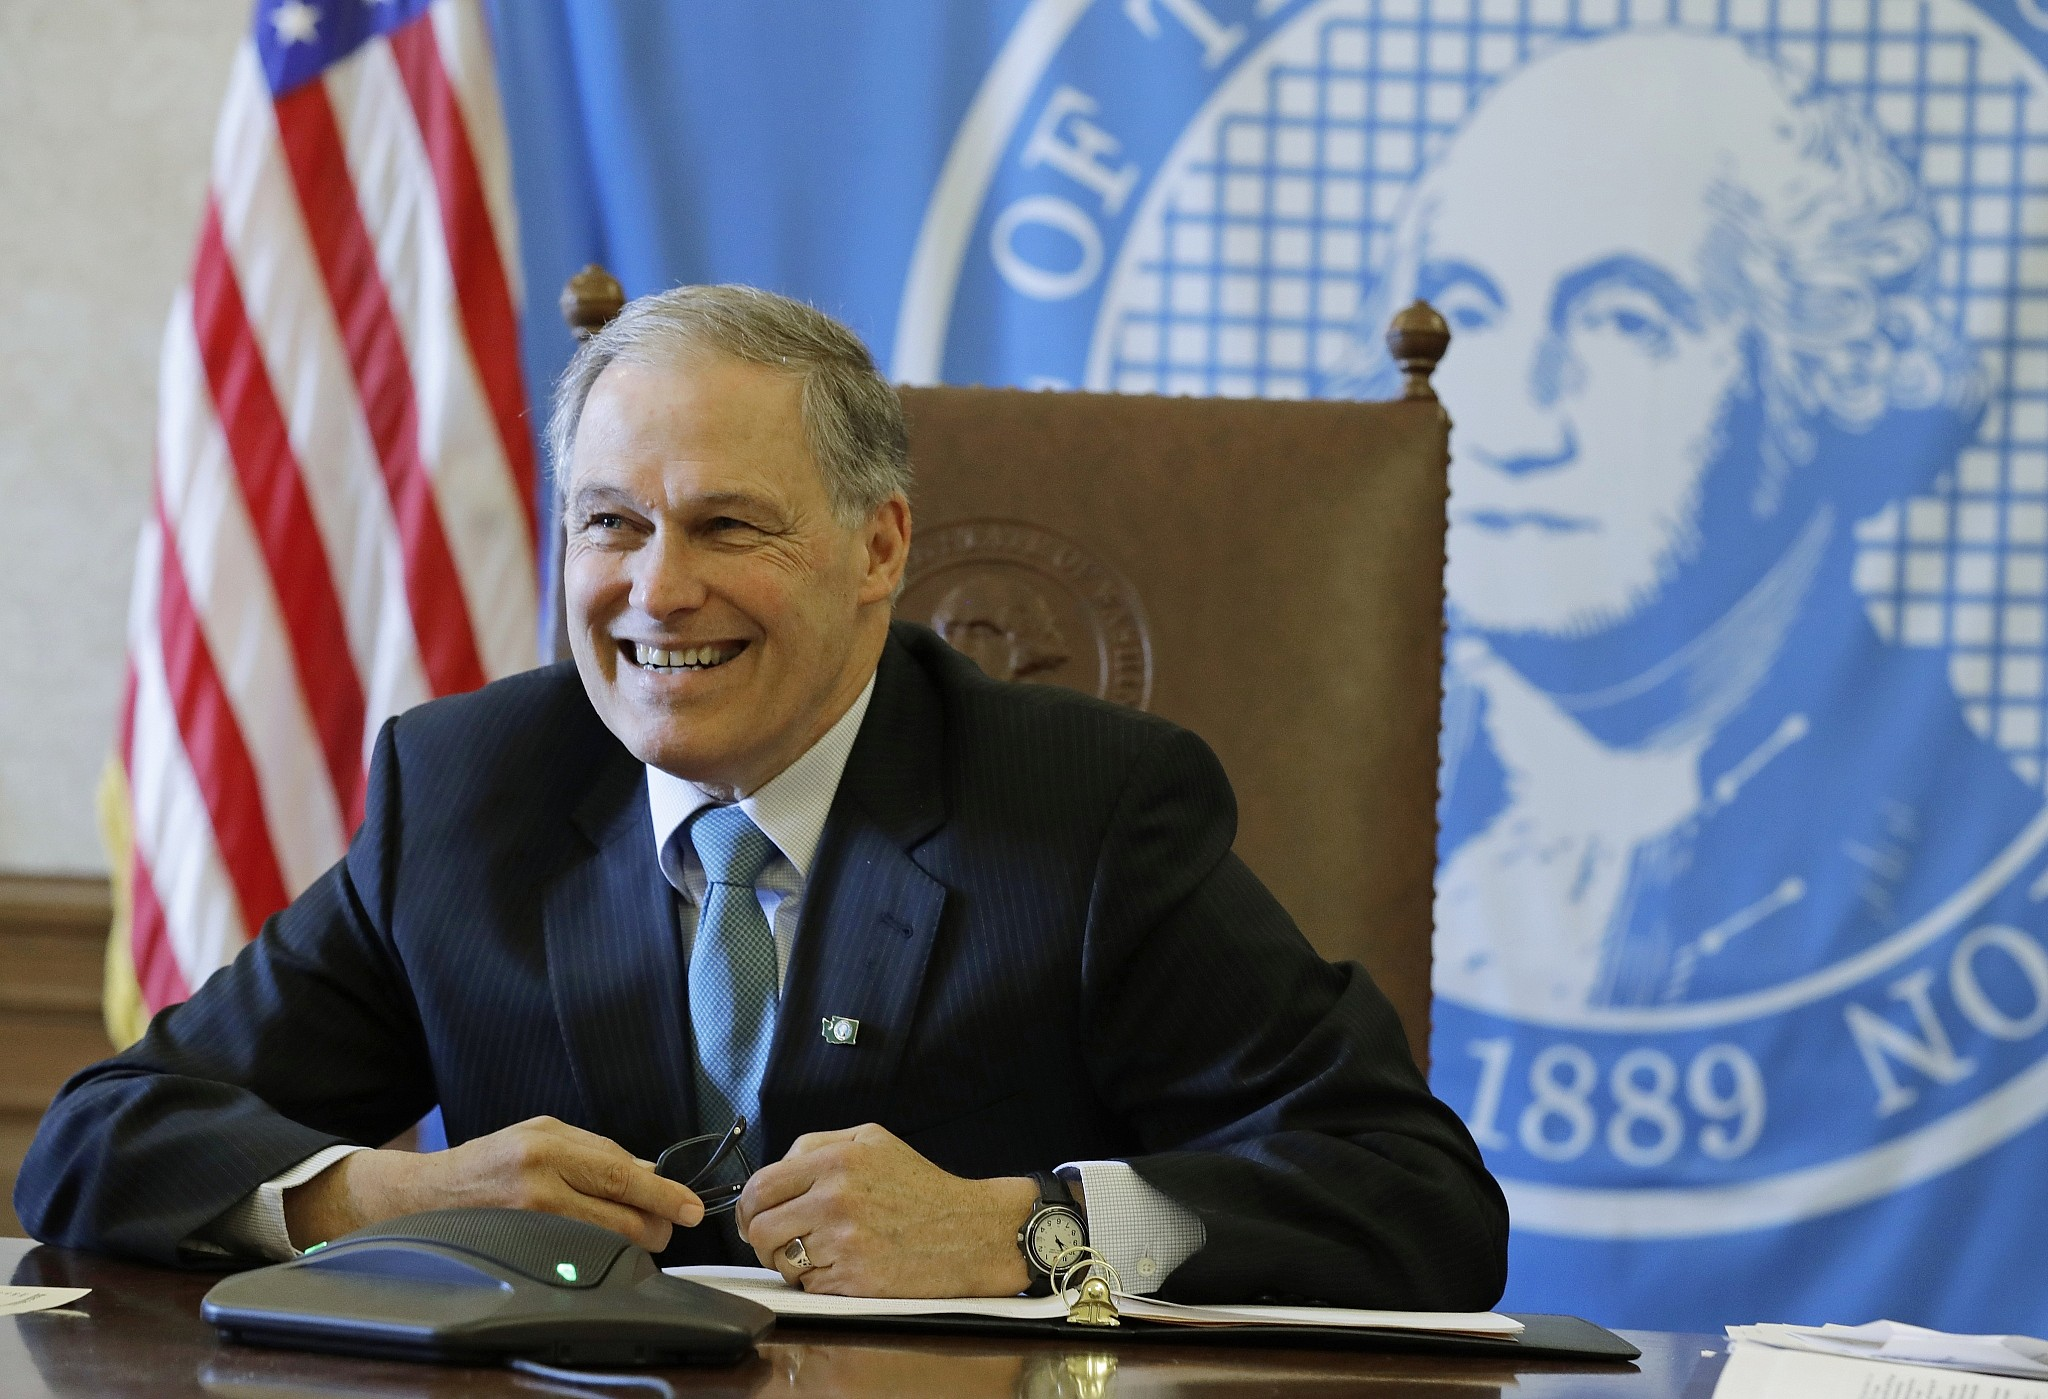 Washington Gov. Jay Inslee Joins 2020 Democratic Presidential Field